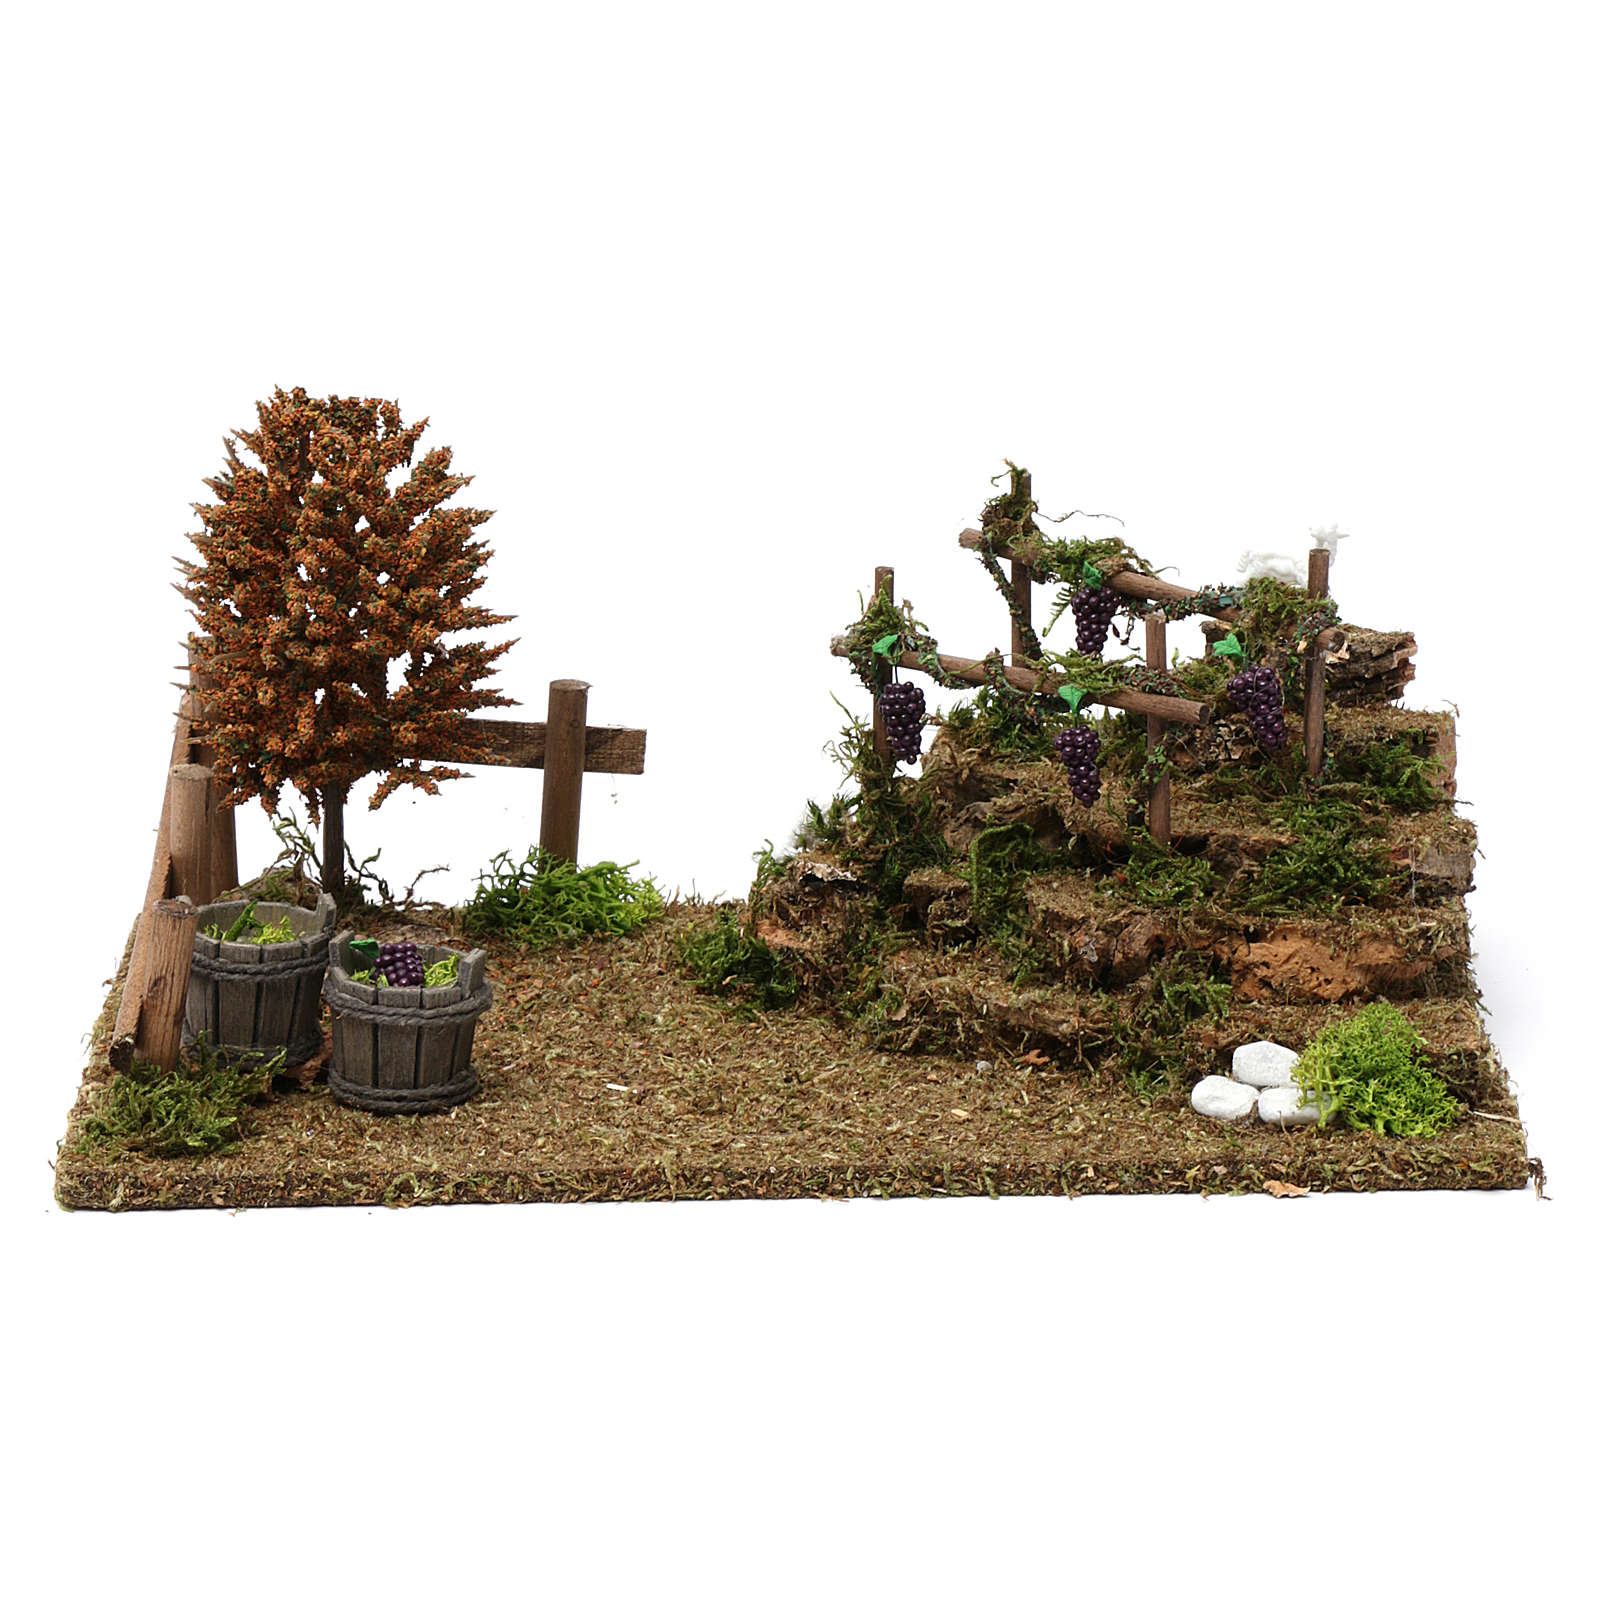 Hills with vineyards, tree and sheep 10x30x20 cm for Nativity Scene 8-10 cm 4